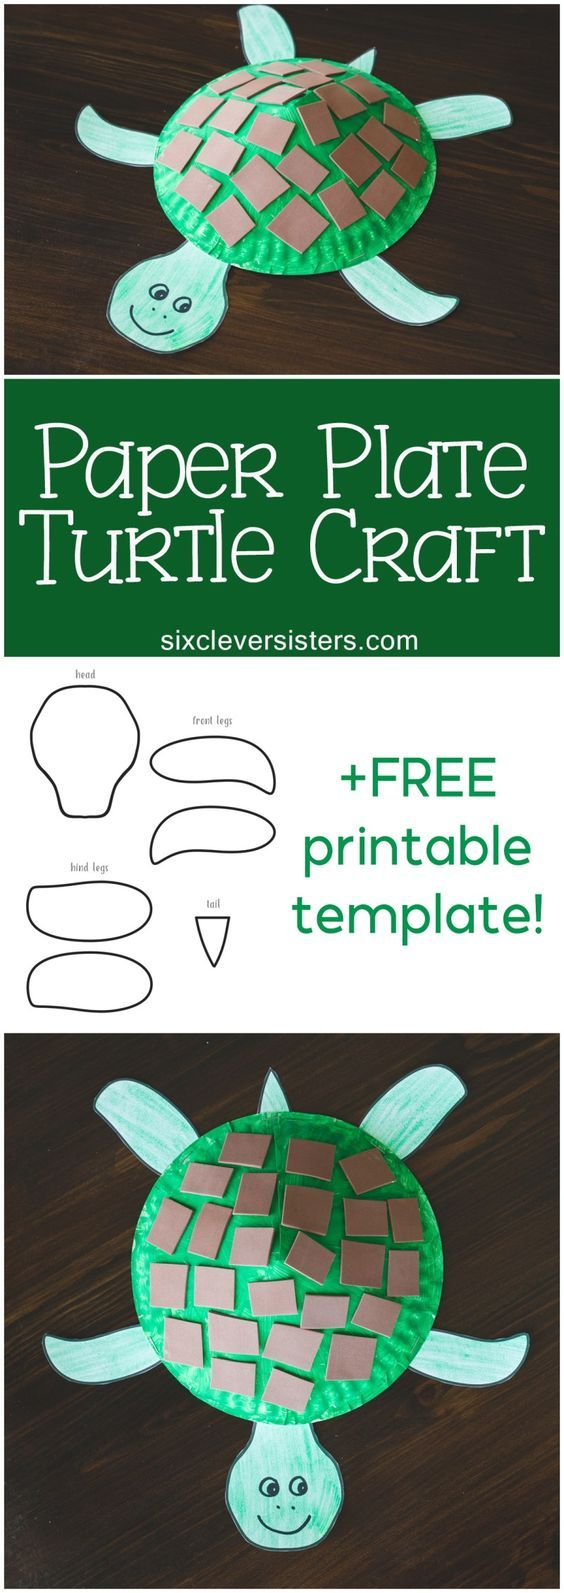 Paper Plate Craft | Turtle Craft | Paper Plate Turtle Craft | Kids Craft |  Printable